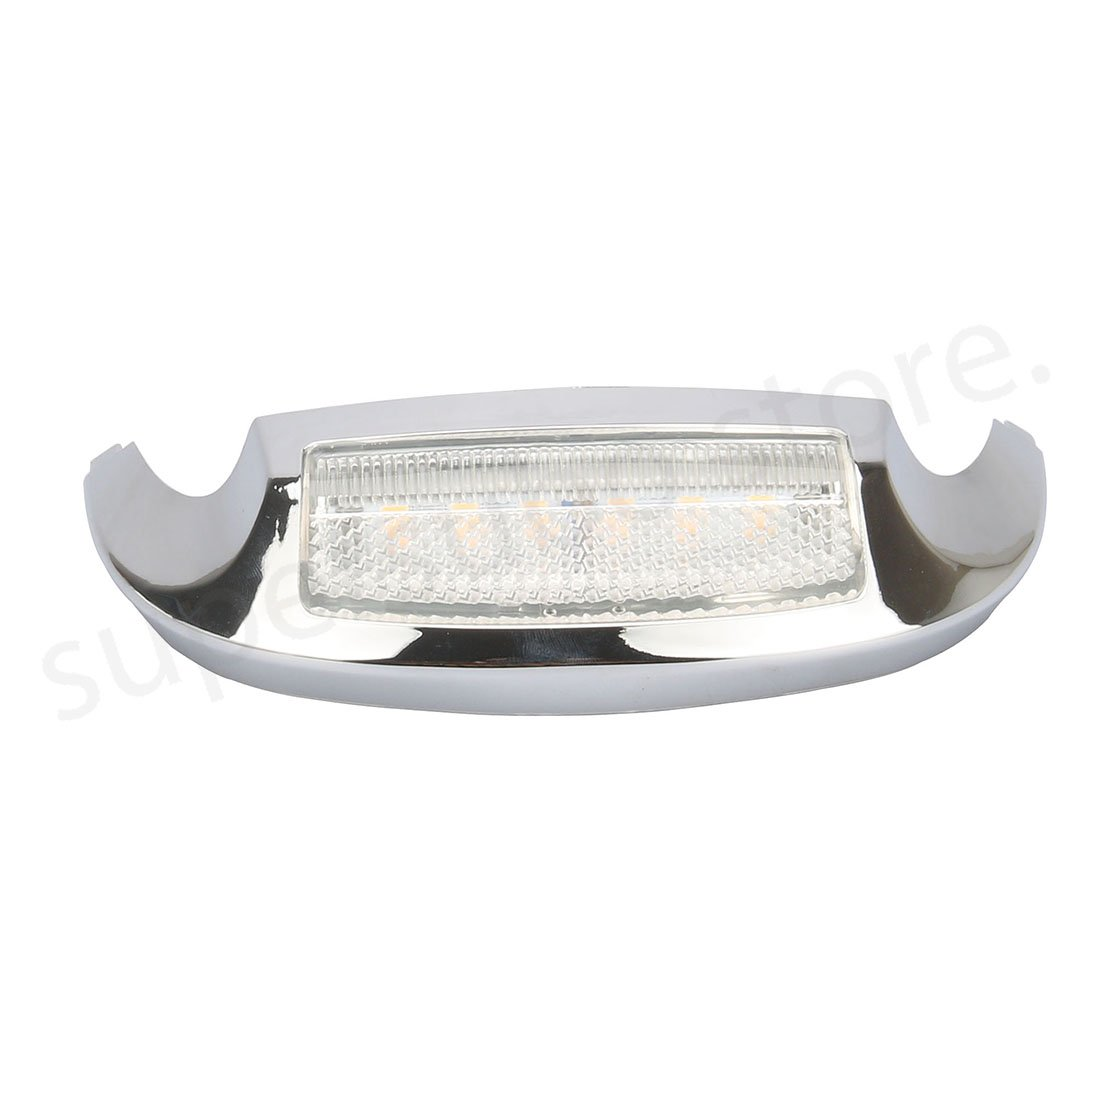 Motorcycle street glide fender tip light CLEAR Front LED Light For Harley Electra Glide Ultra Limited 2009-2019